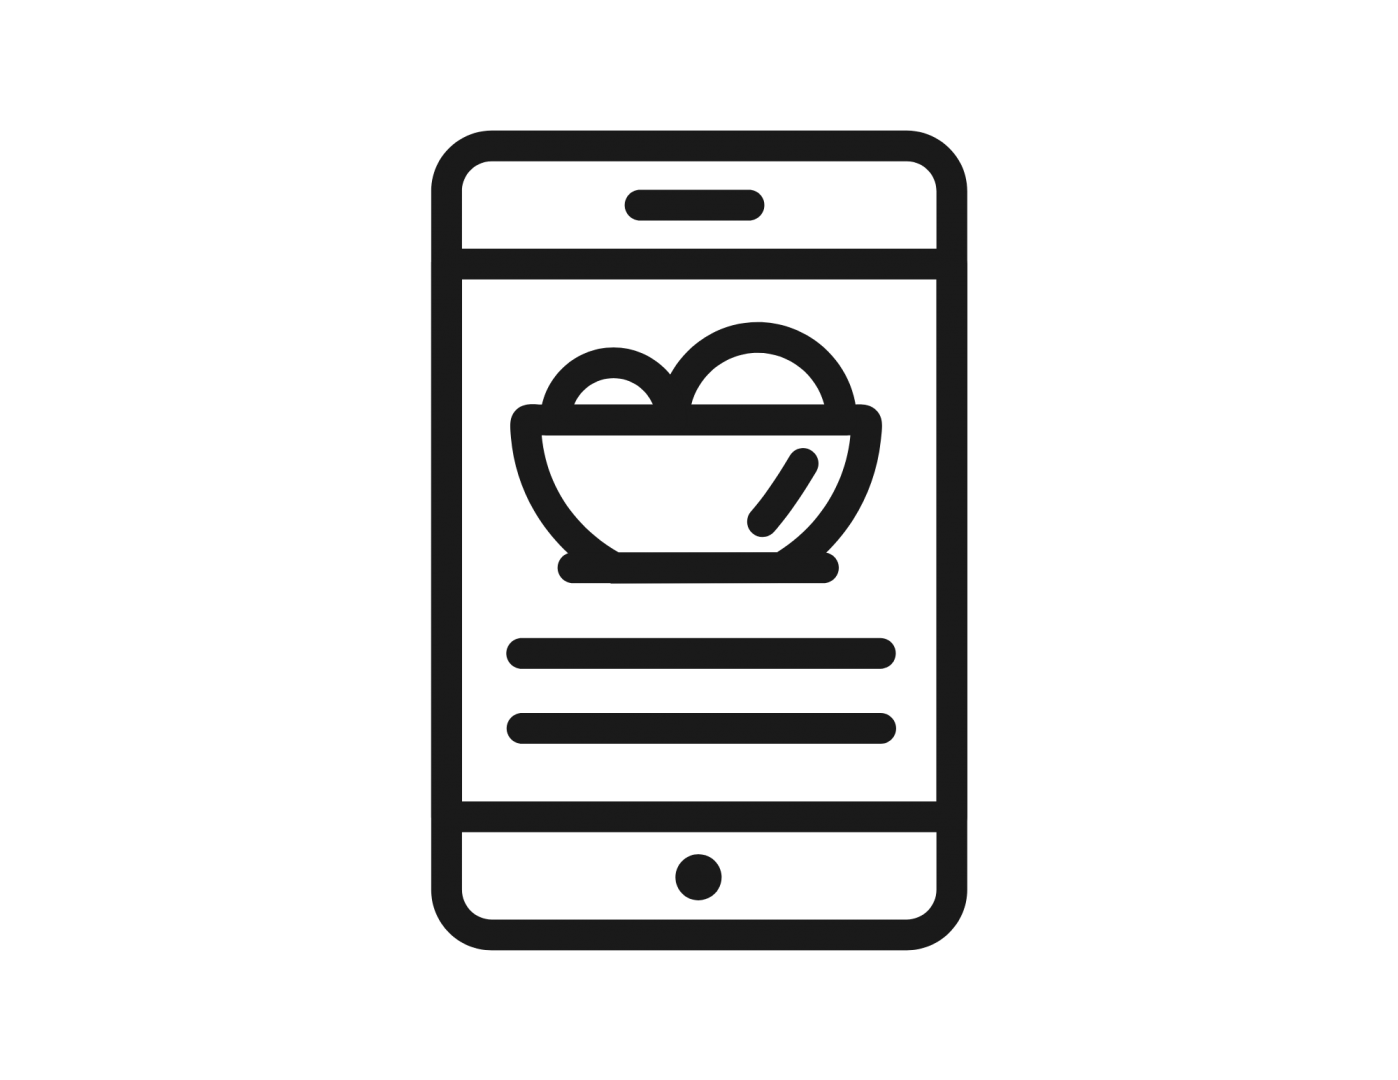 An image of a phone with recipe